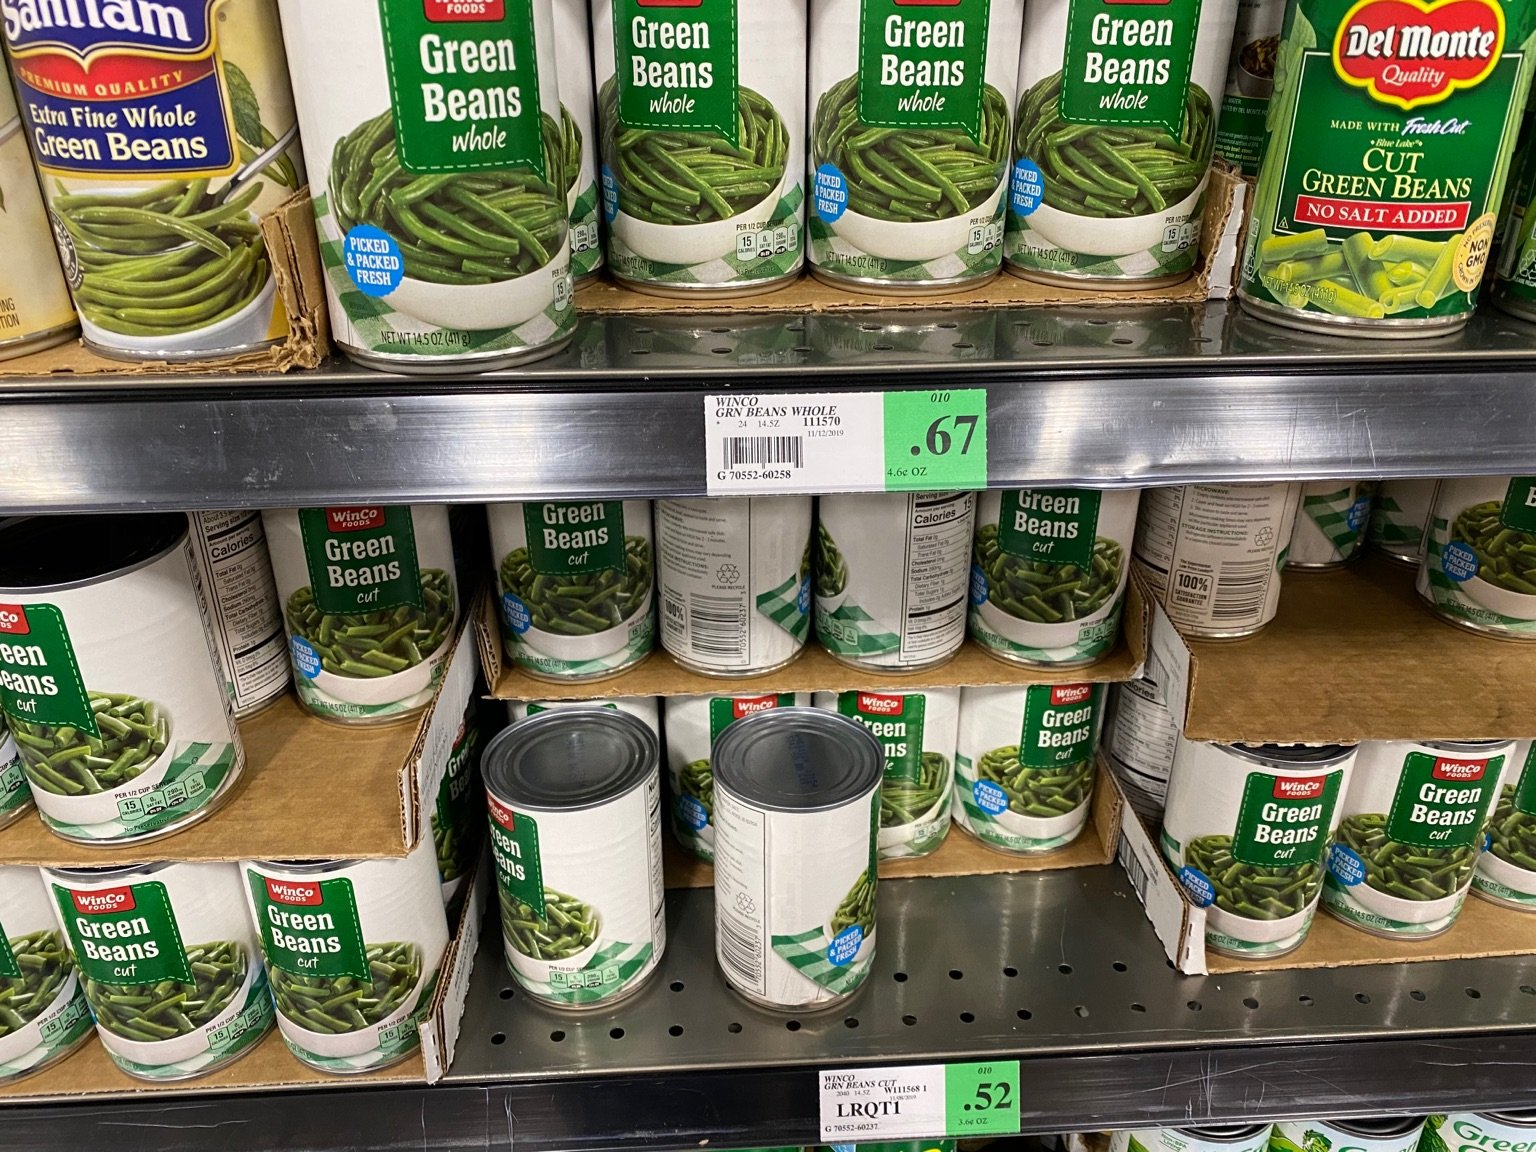 A picture of canned green beans on the shelf of a grocery store.